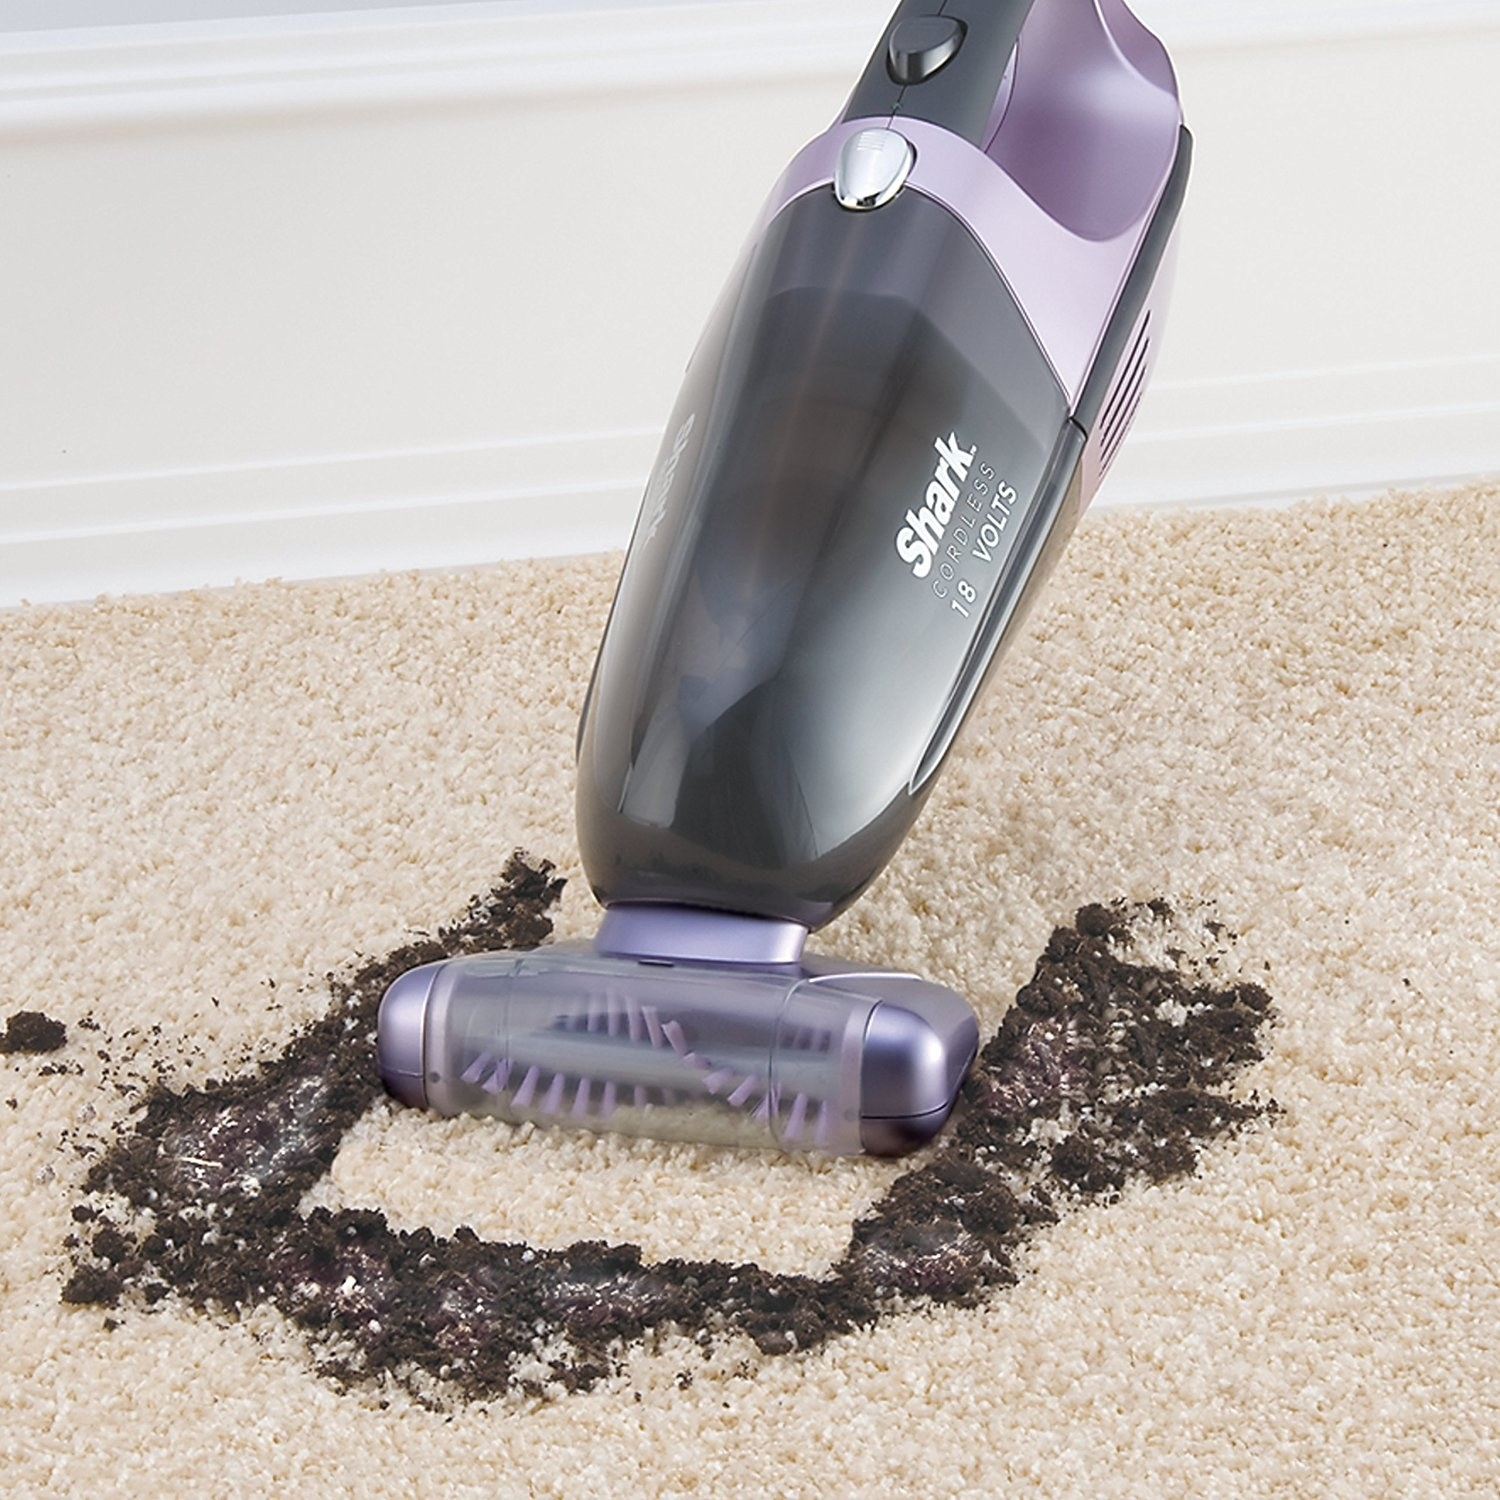 The Shark vacuum sucking up dirt from a carpeted floor